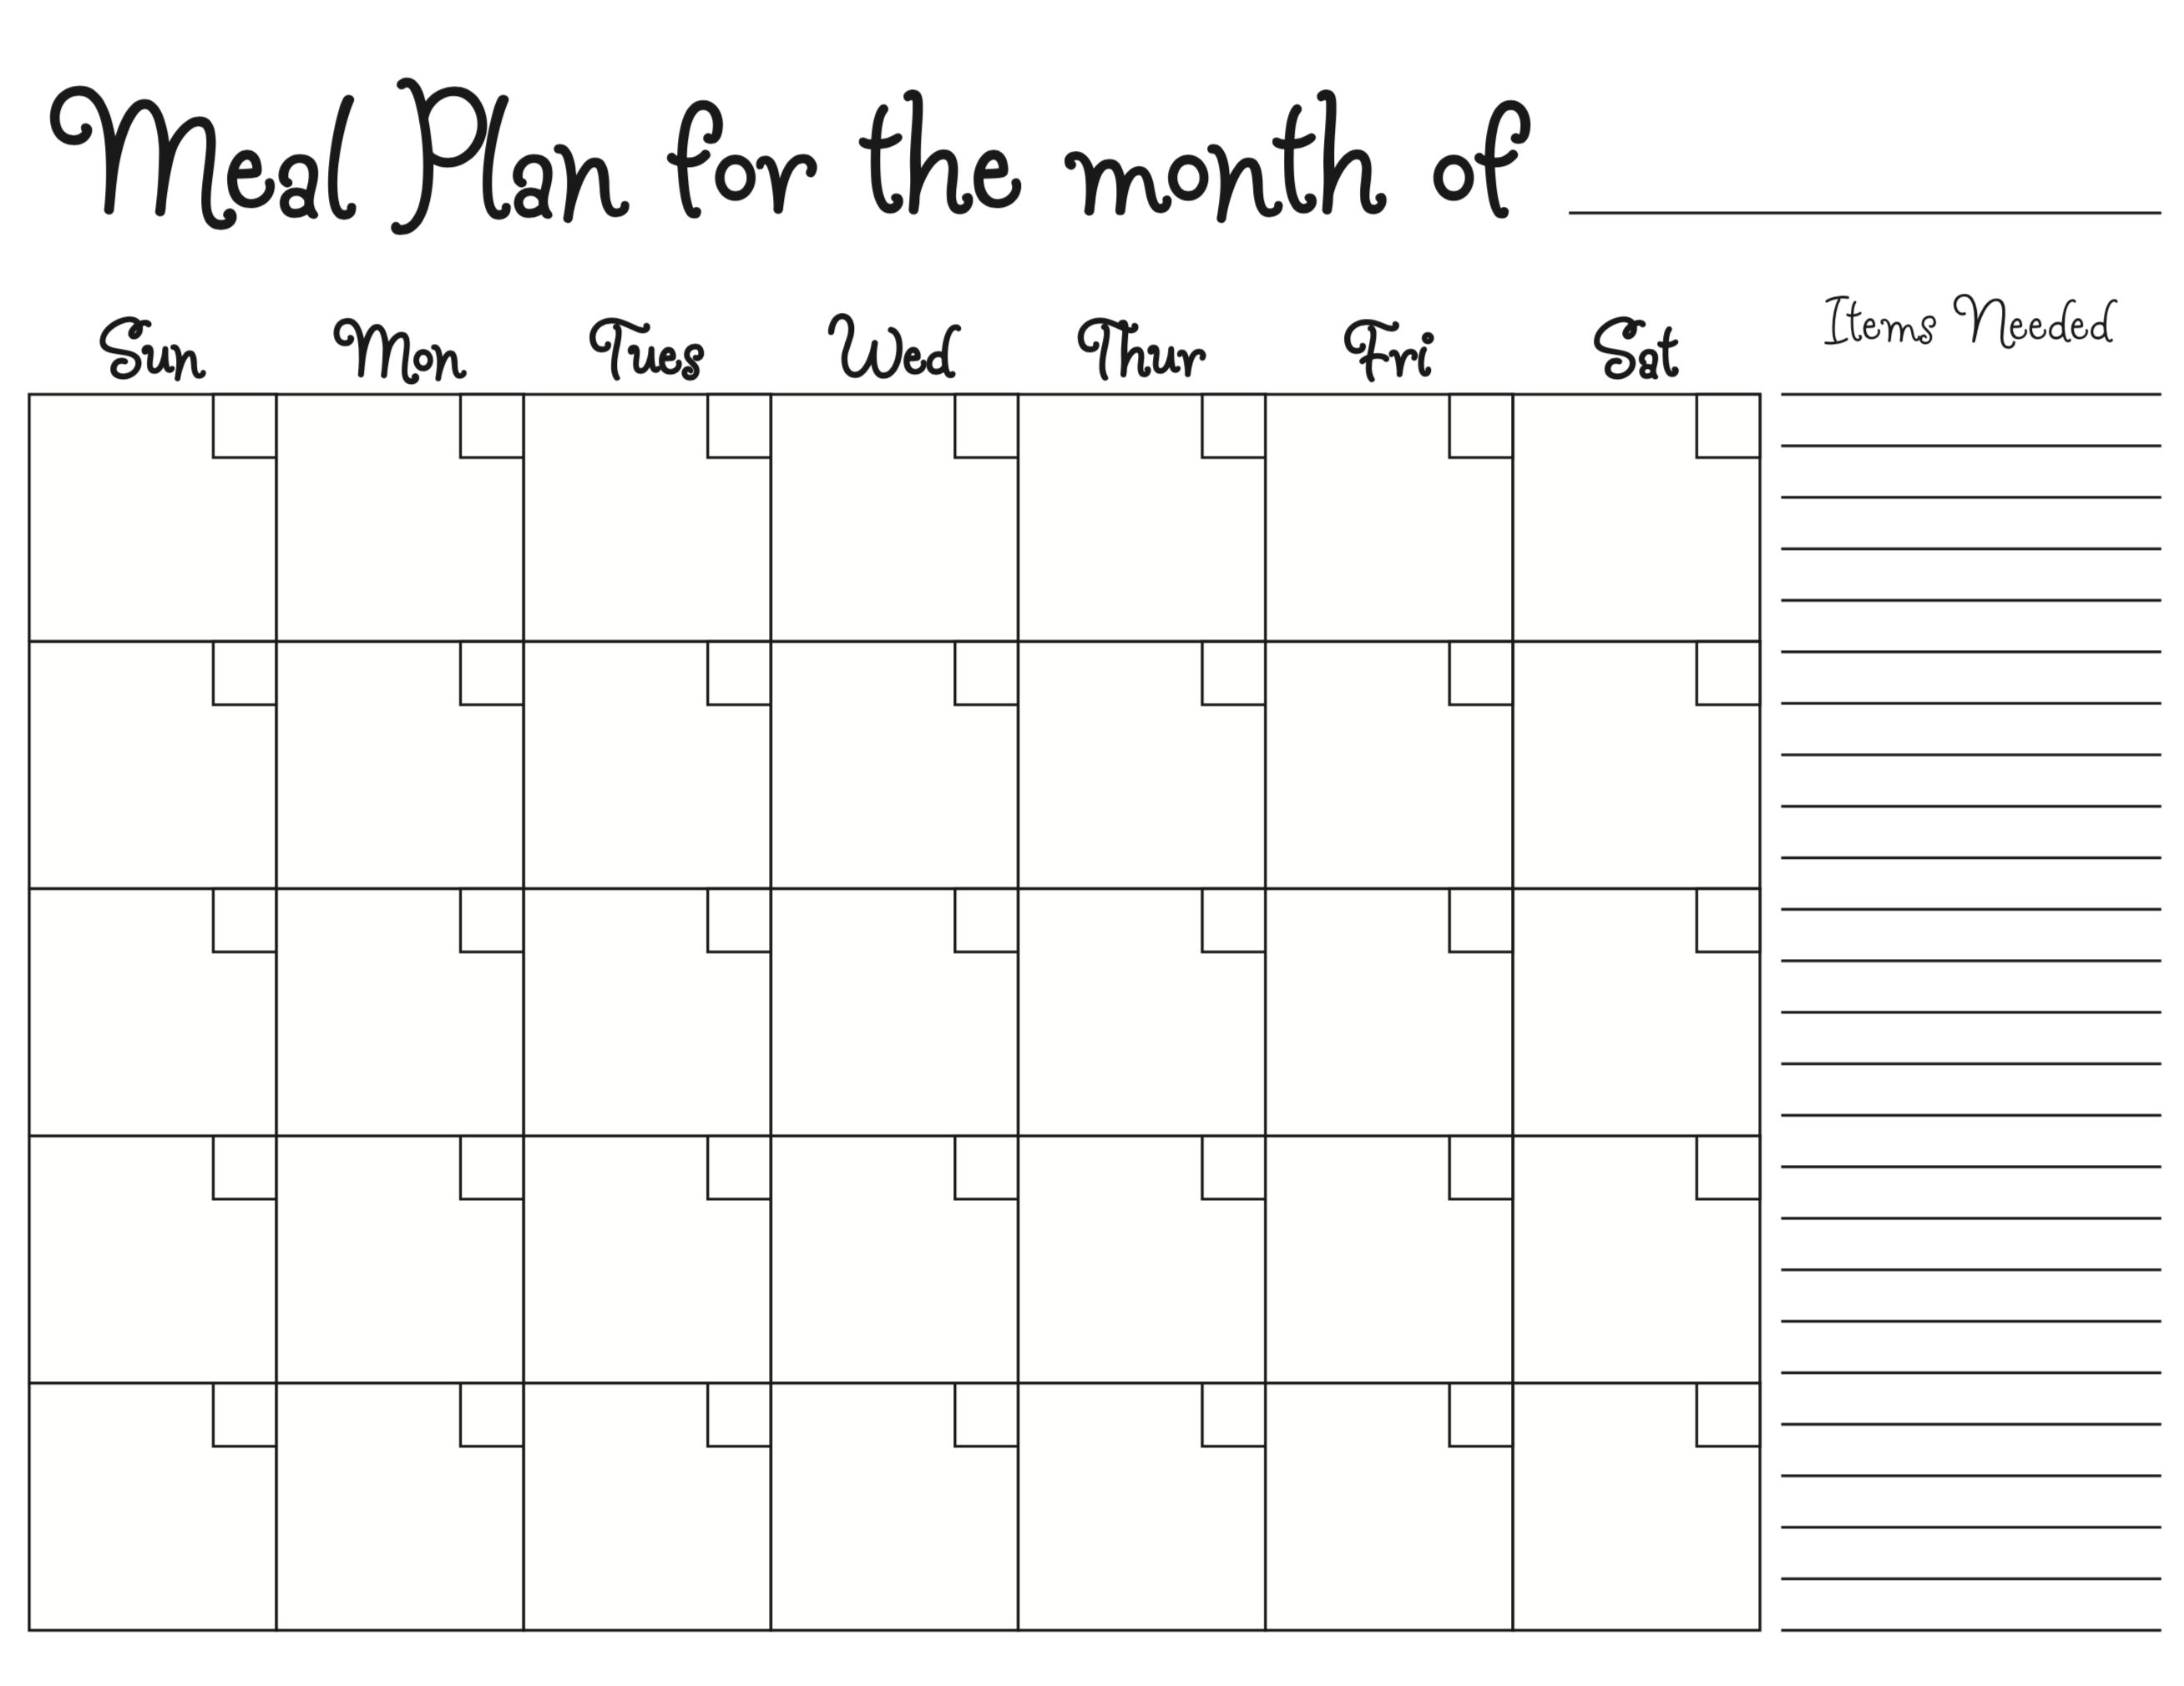 Meal Planning Calendar – Photokapi.com